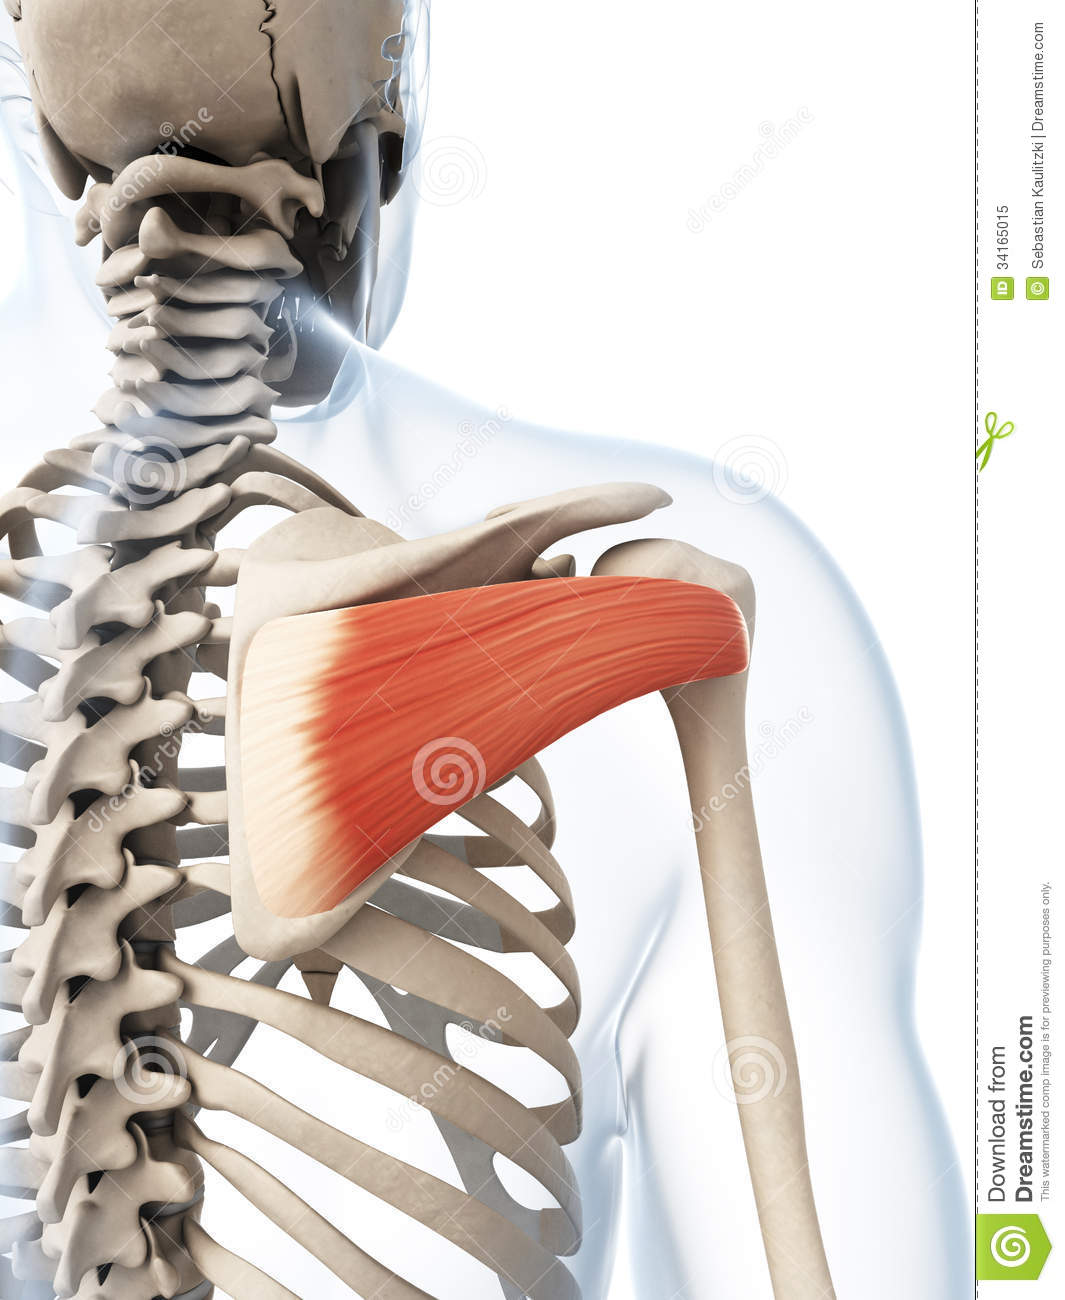 The Infraspinatus Muscle Royalty Free Stock Photo - Image: 34165015